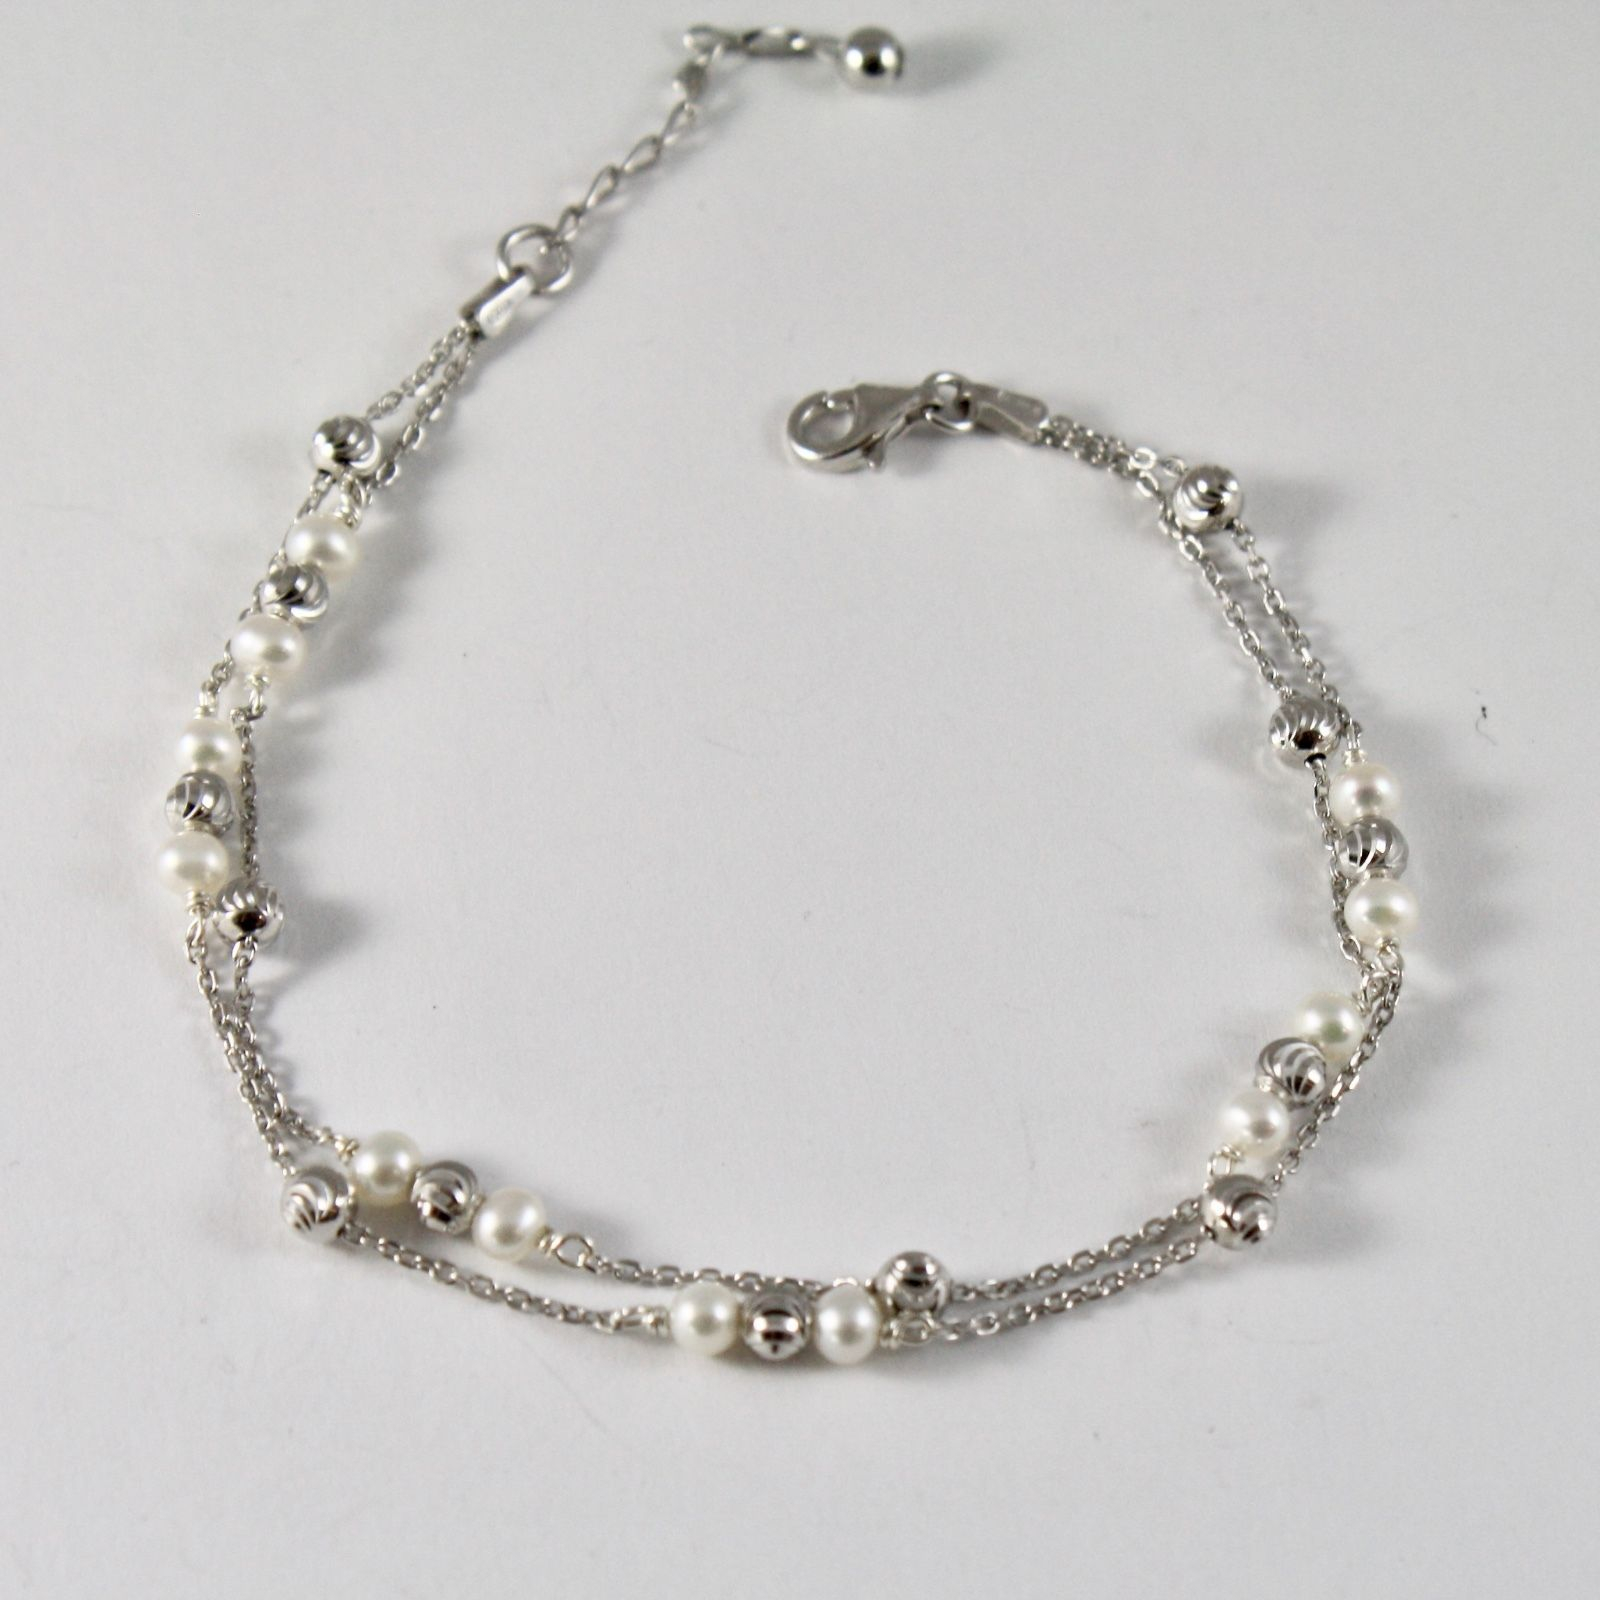 SILVER 925 BRACELET WITH BEADS FACETED AND WHITE PEARLS OF WATER DOLCE